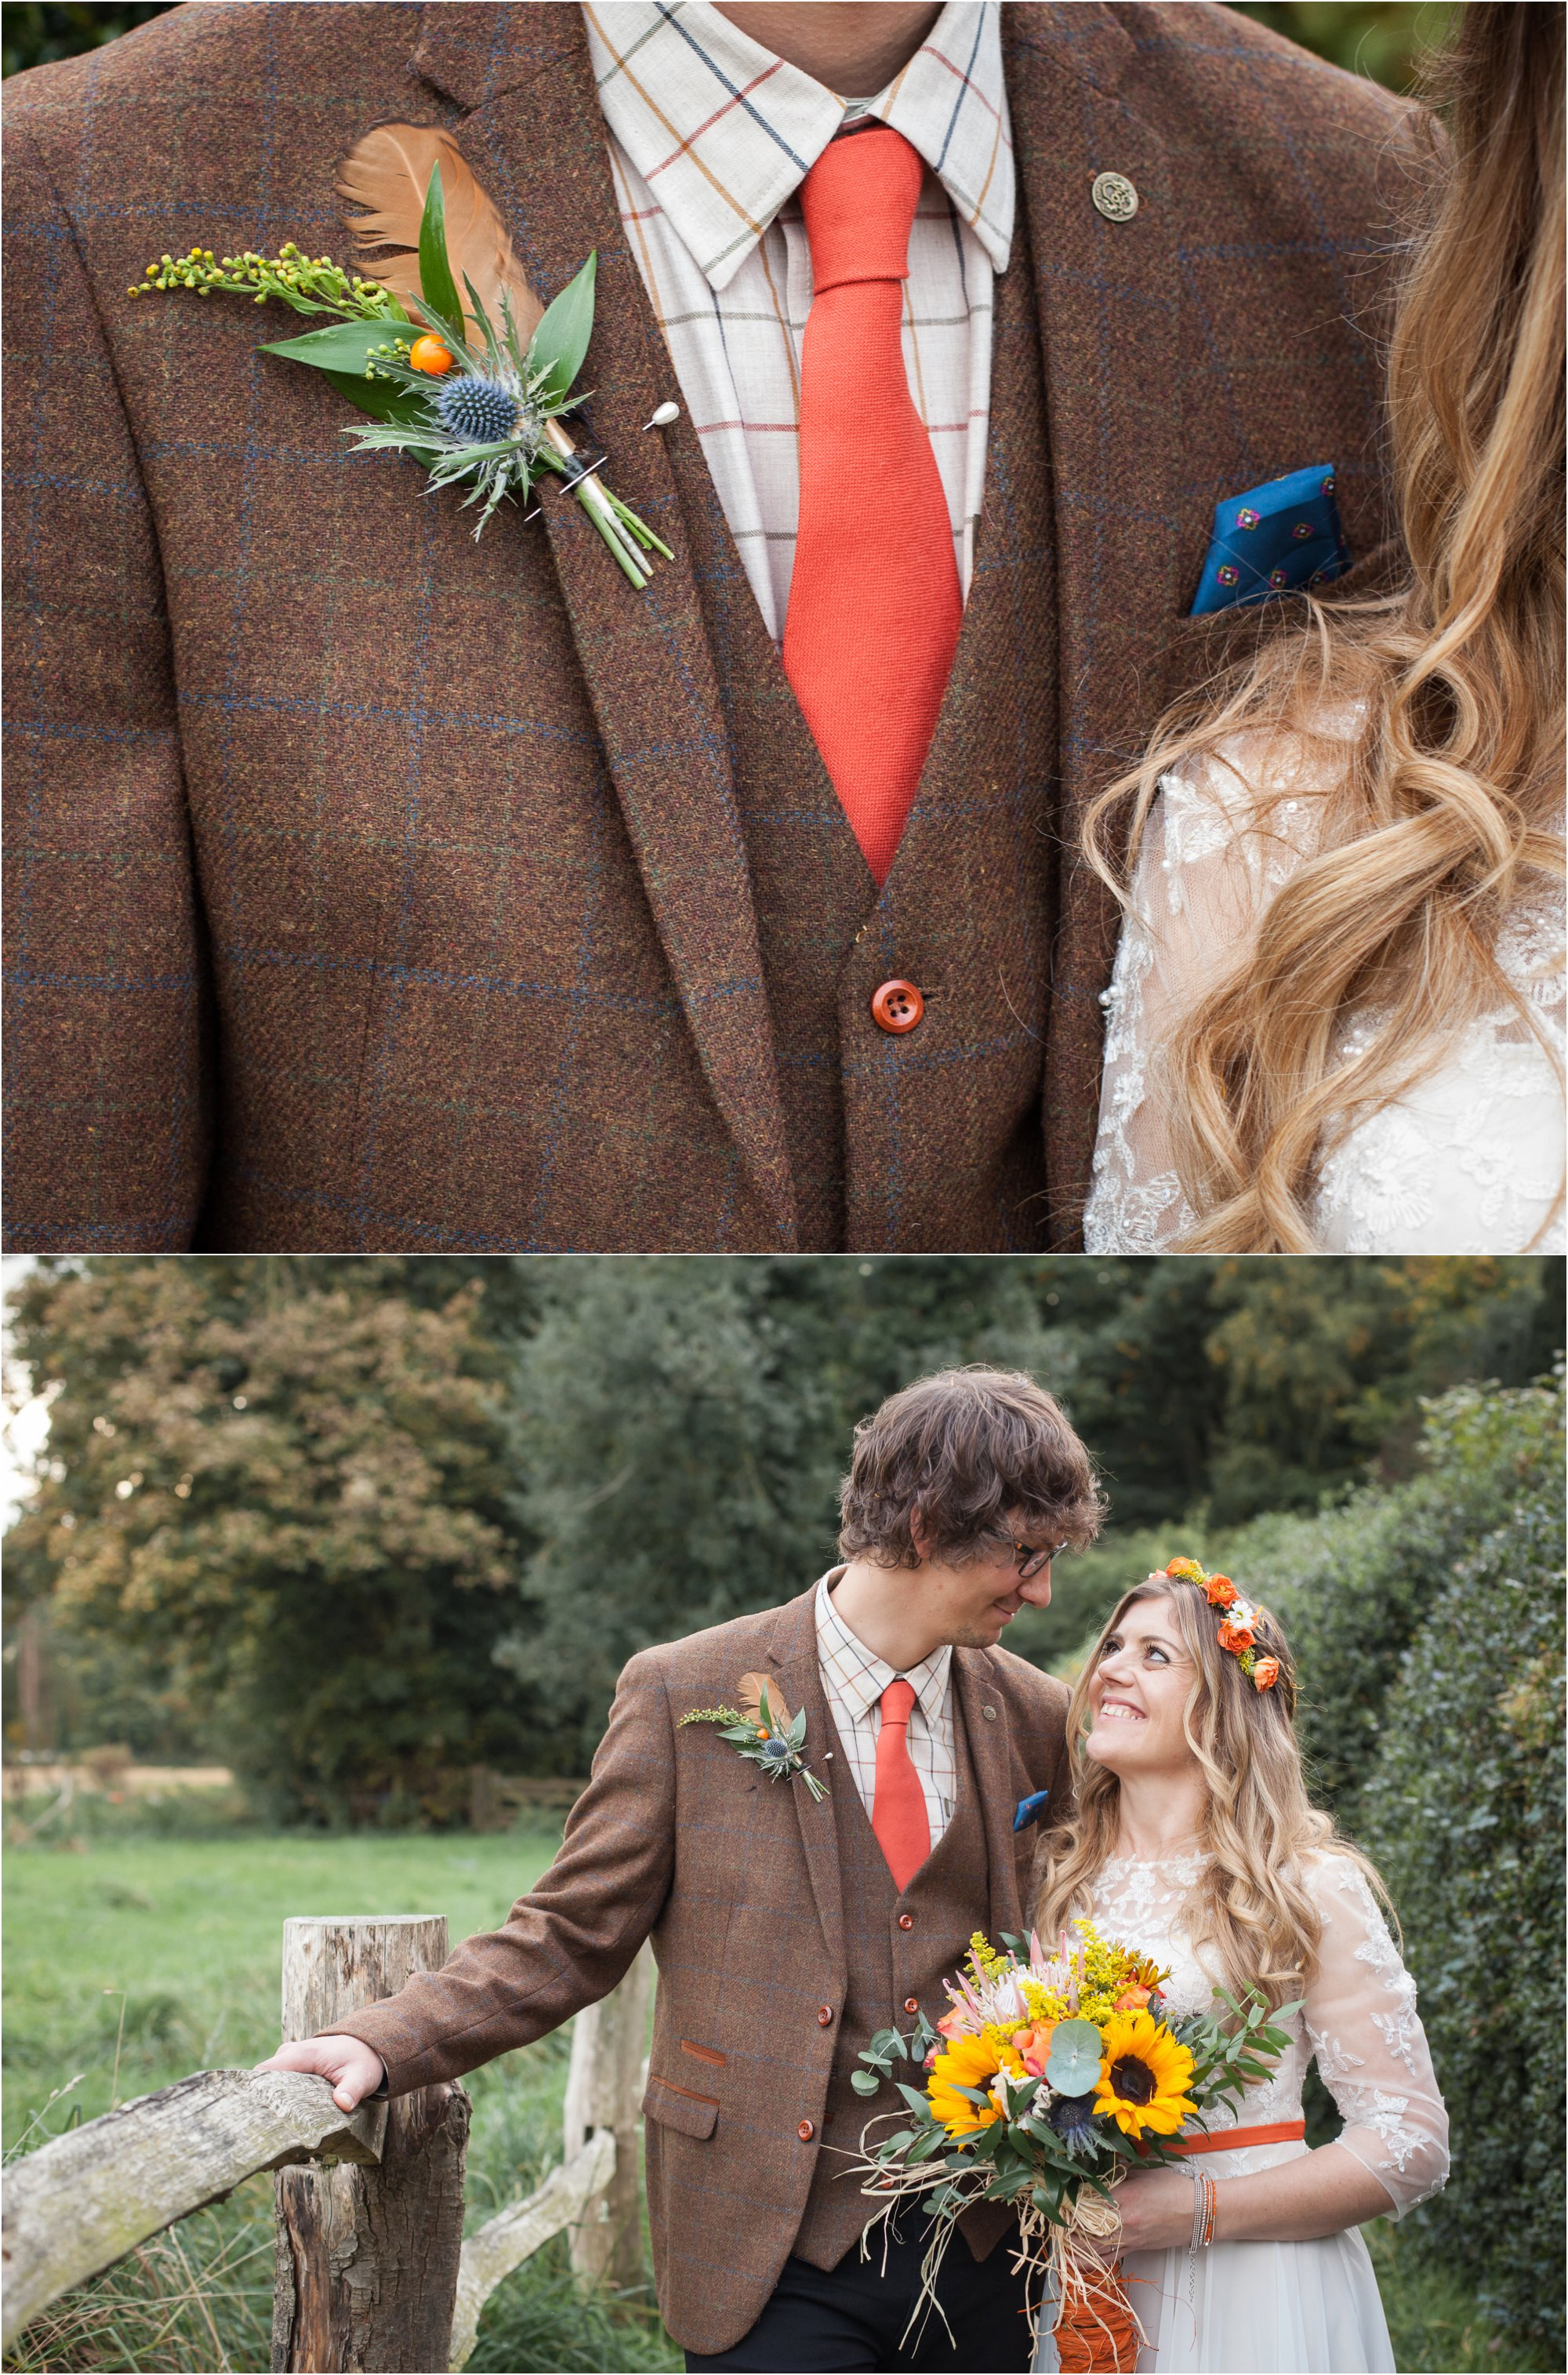 Styal_Wedding_Wilmslow_Cheshire_Autumn_Colourful_photography_0109.jpg